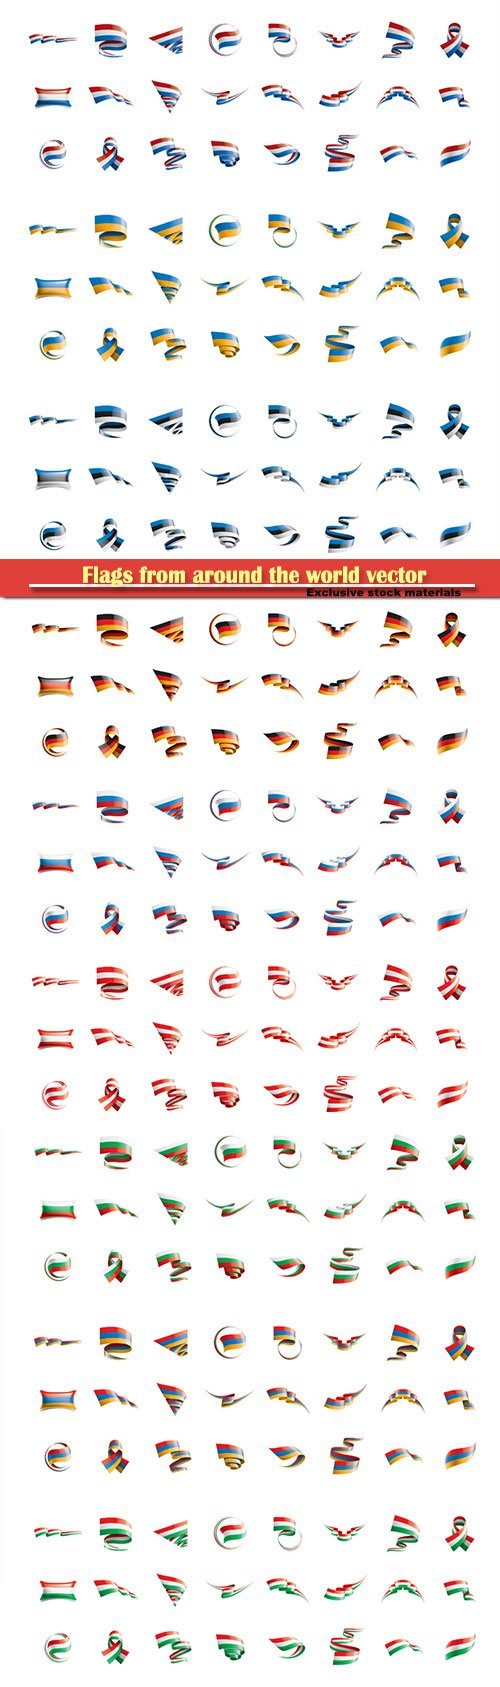 Flags from around the world vector illustration